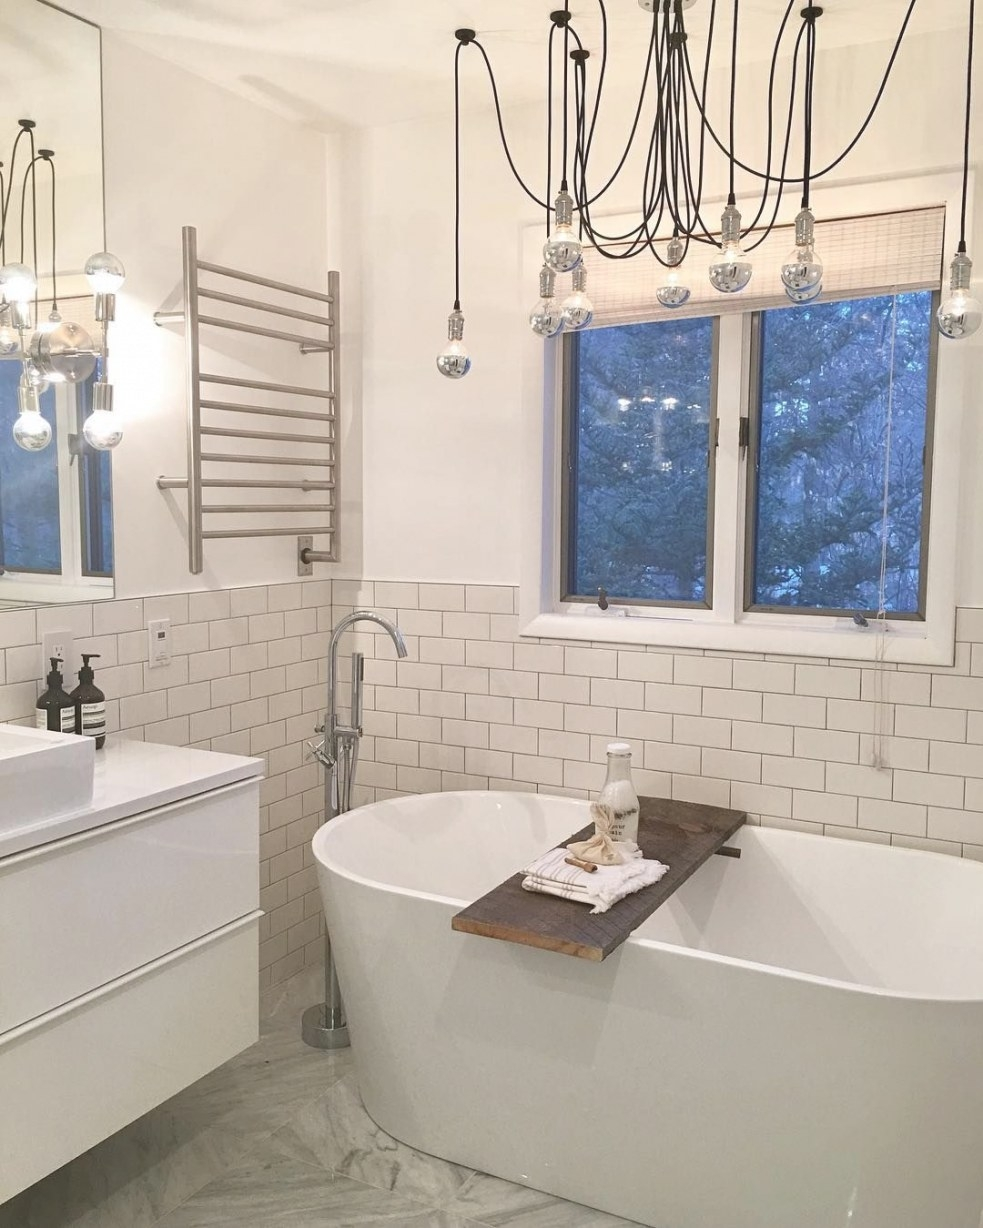 Love The Towel Rack, Standalone Tub, And Clean White Look pertaining to Stand Alone Vanities For Bathrooms